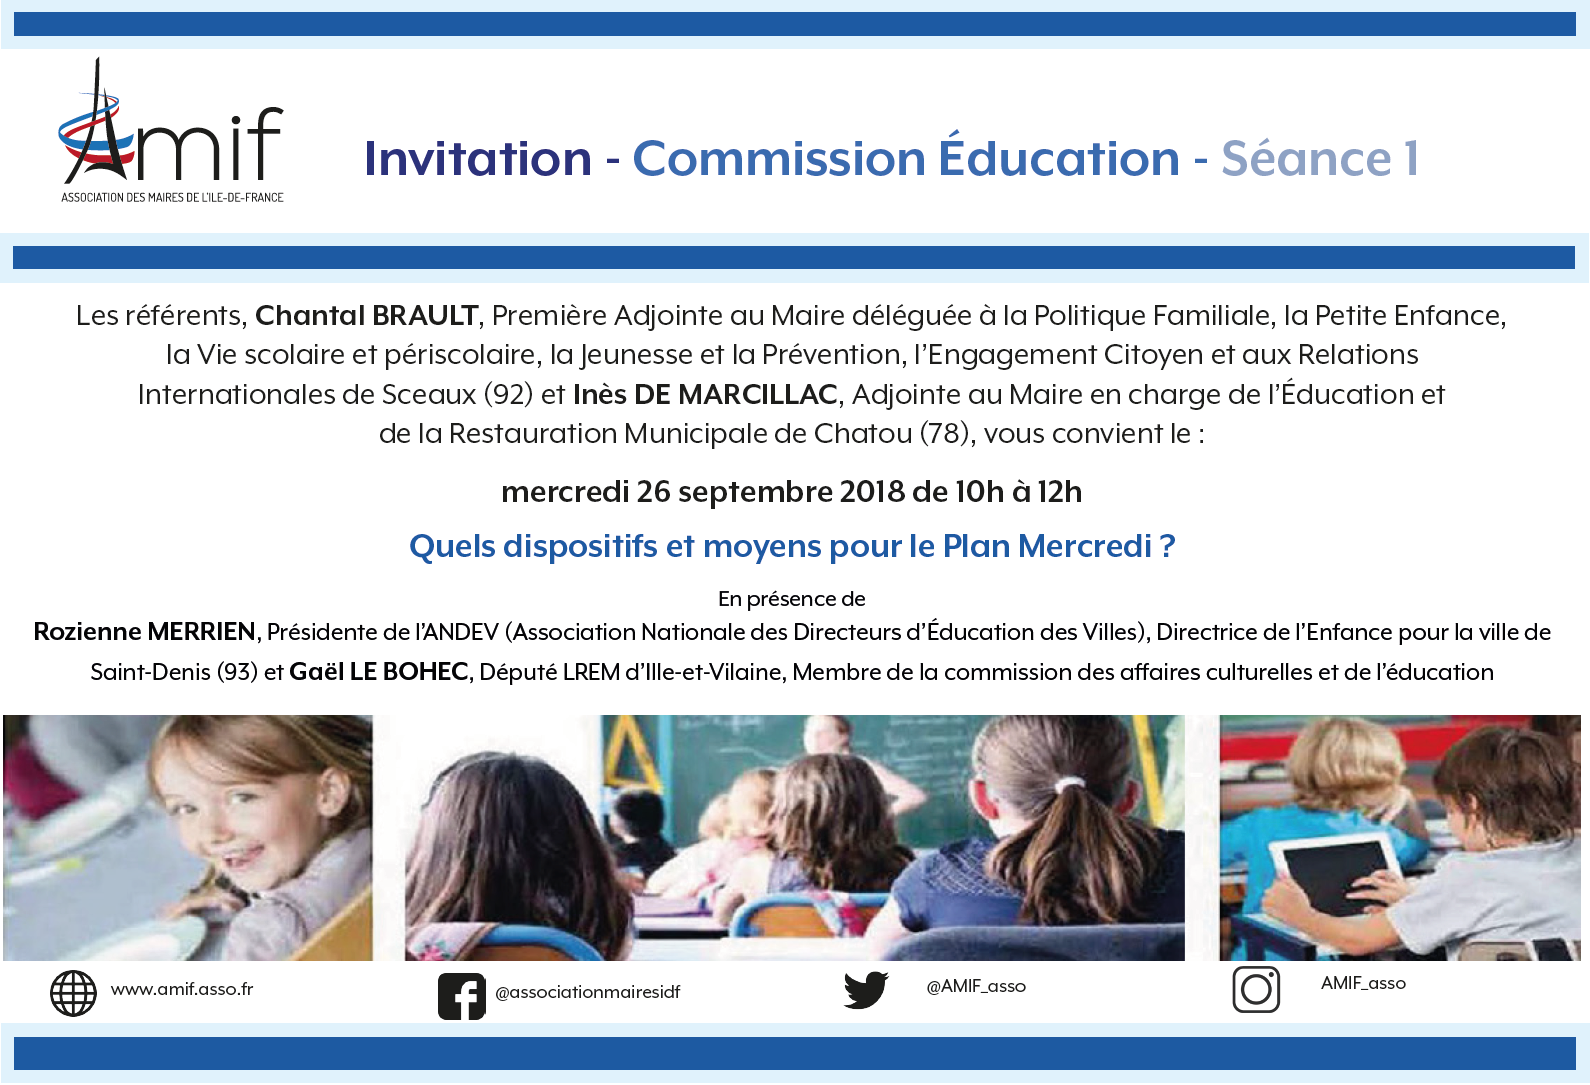 CommissionEducationSeance126septembre2018v4